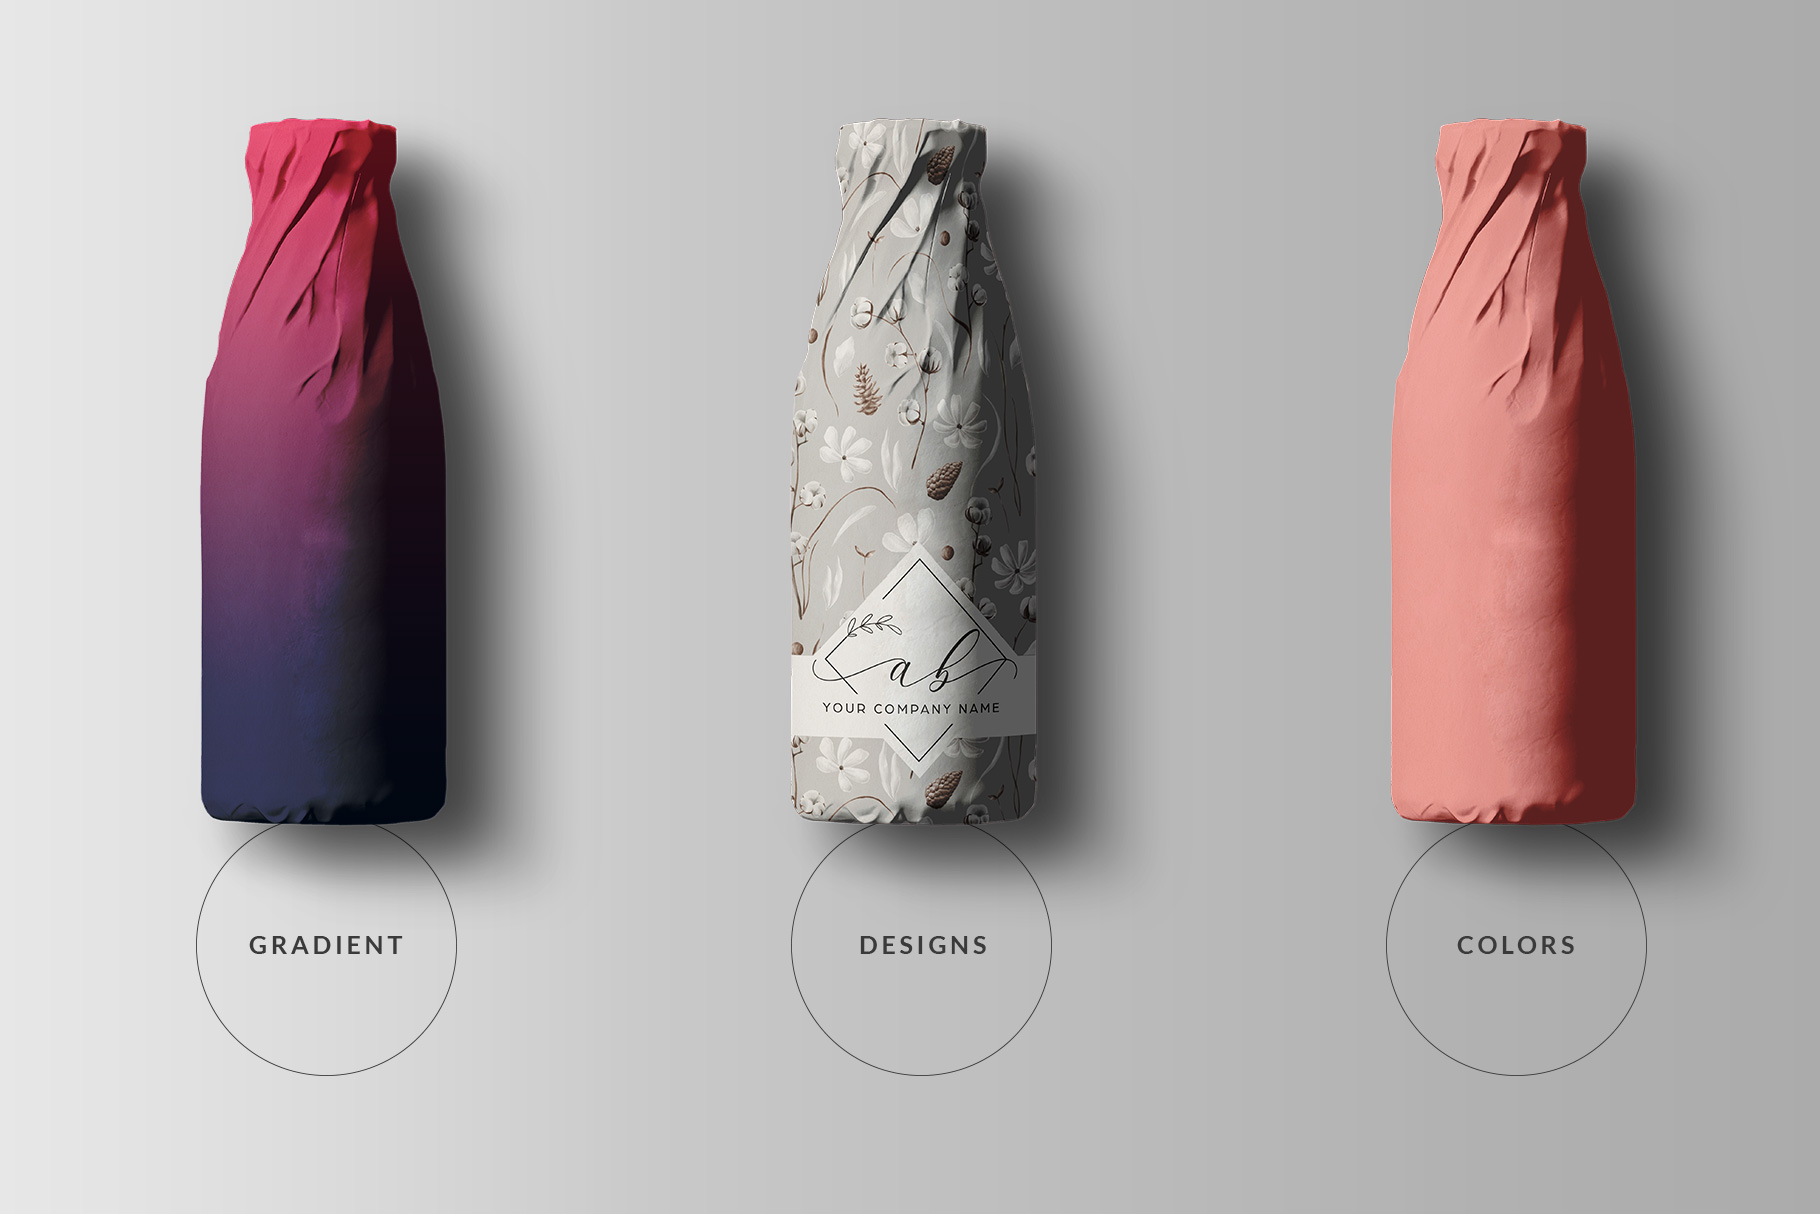 types of the top view wrapped bottle mockup